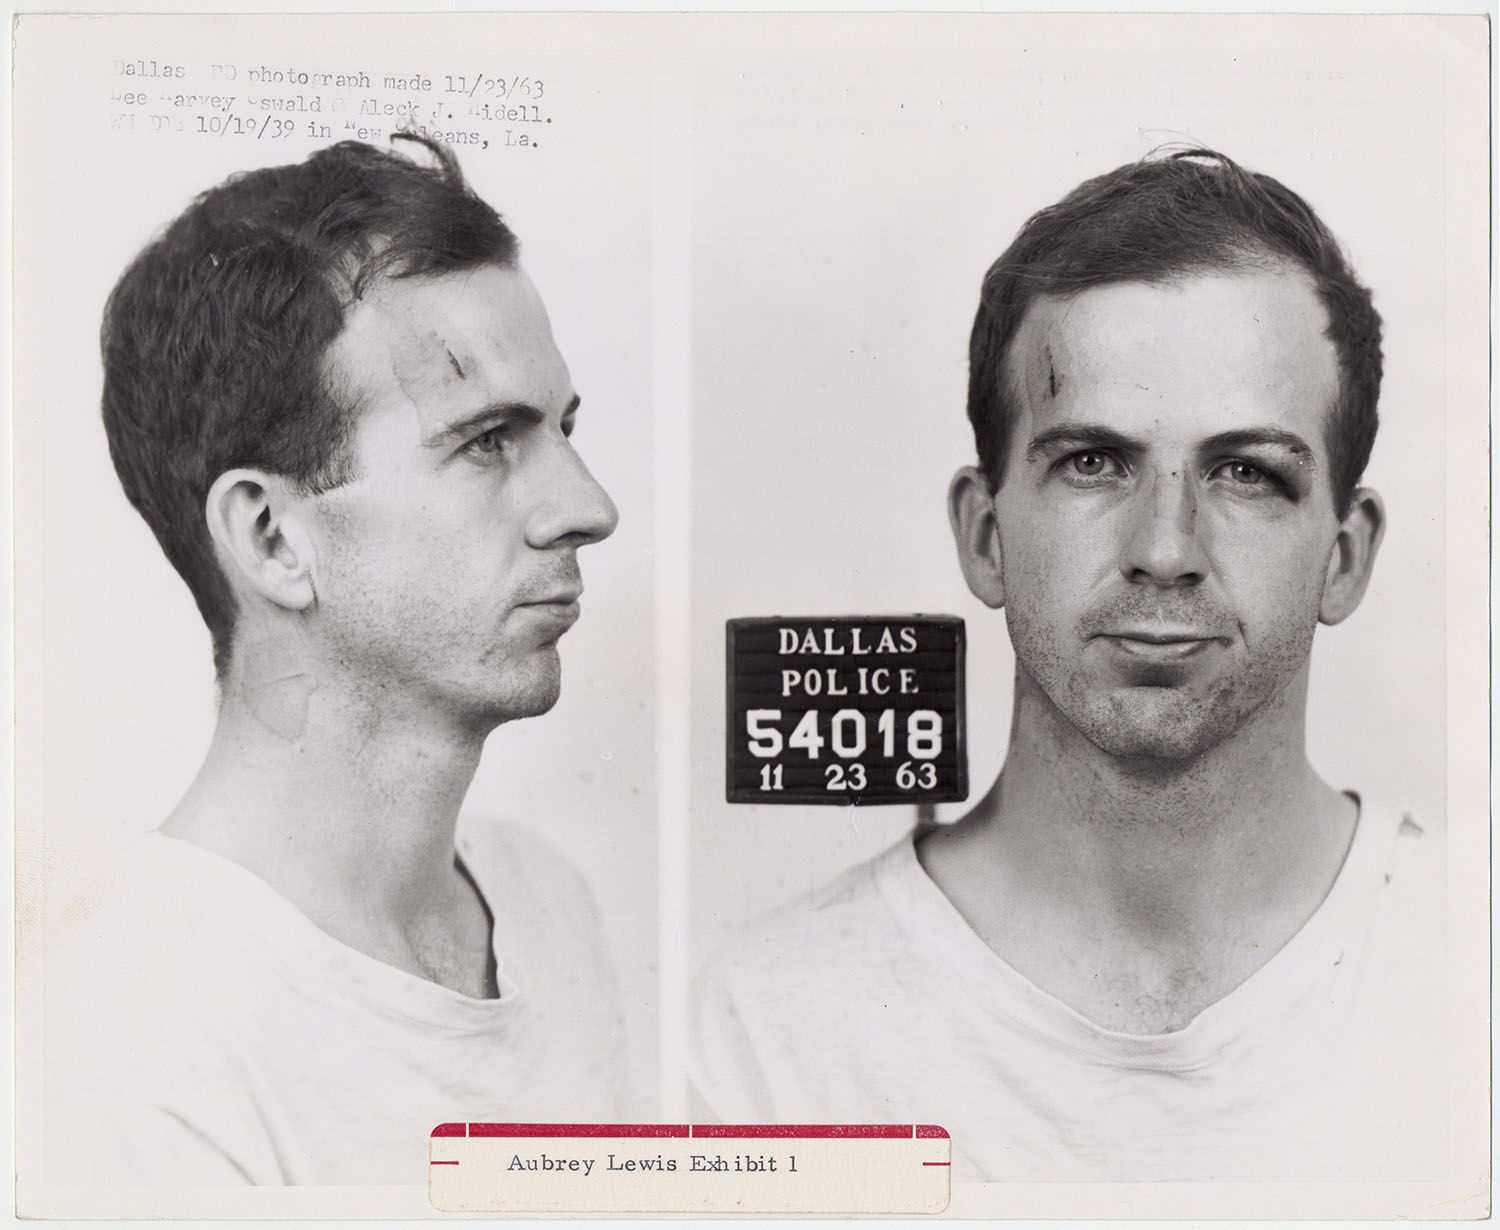 In 2013, to observe the 50th anniversary of President John F. Kennedy's death in Dallas, the National Archives digitized many materials relating to his assassination. These Dallas Police Department booking photos of Lee Harvey Oswald, taken Nov. 23, 1963, are among the images that had previously only been available in hard copy form. (Warren Commission, Aubrey Lewis Exhibit 1)